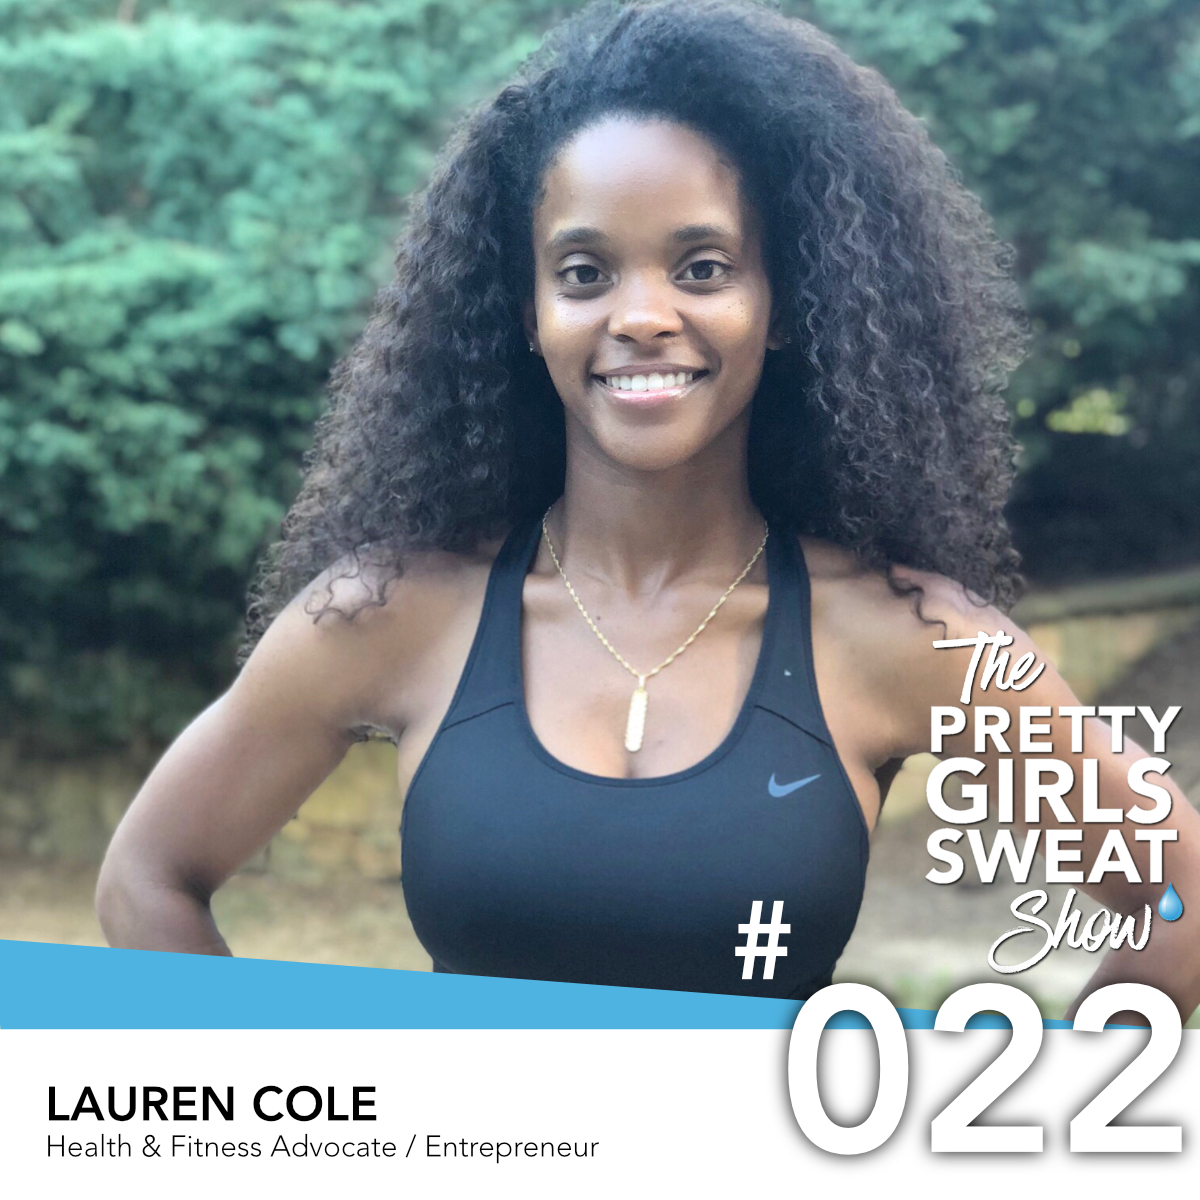 Lauren Cole | Health & Fitness Advocate / Entrepreneur